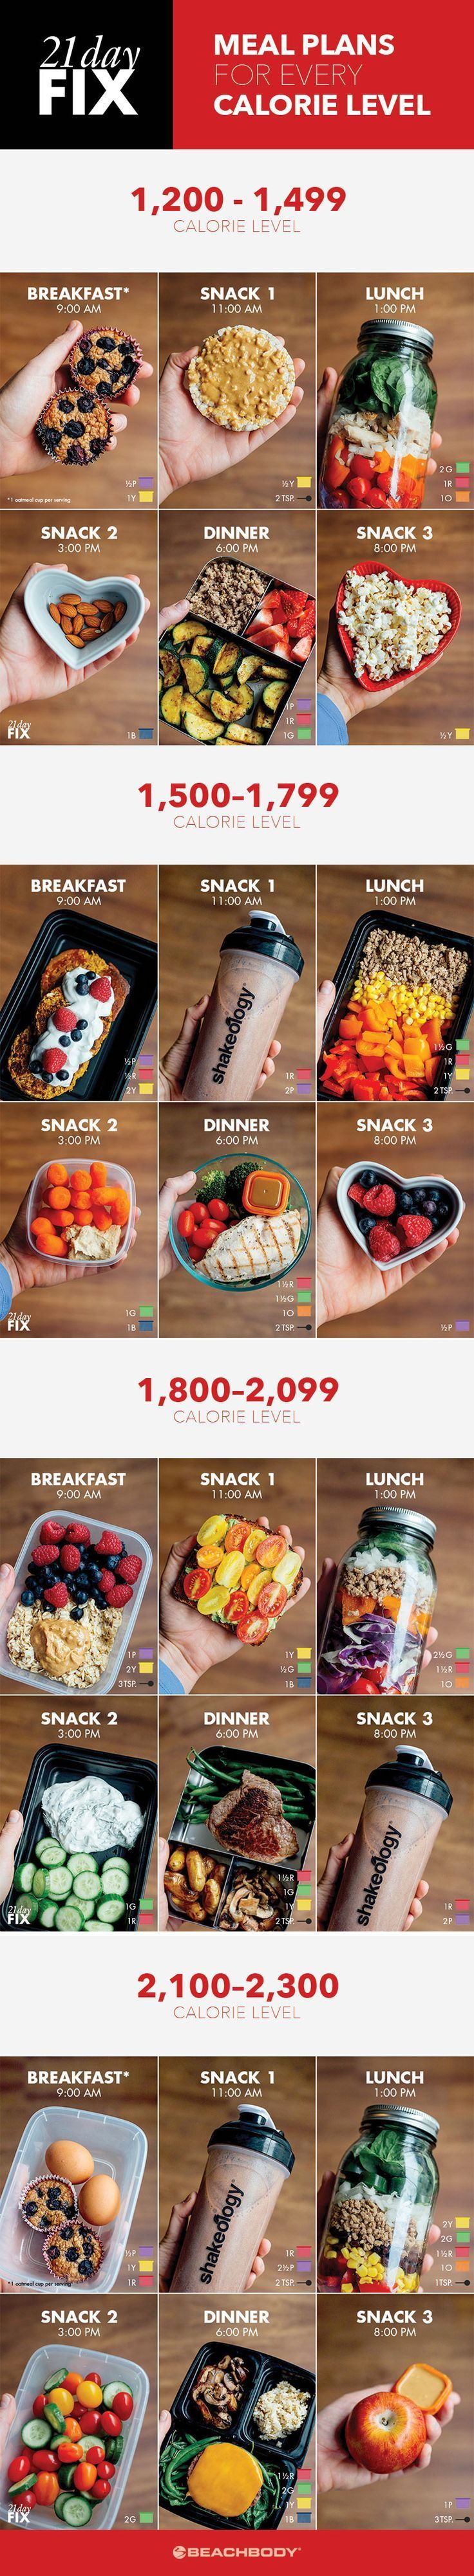 If you're on the 21 Day Fix meal plan, check out these quick and easy meal prep ideas for every calorie level.